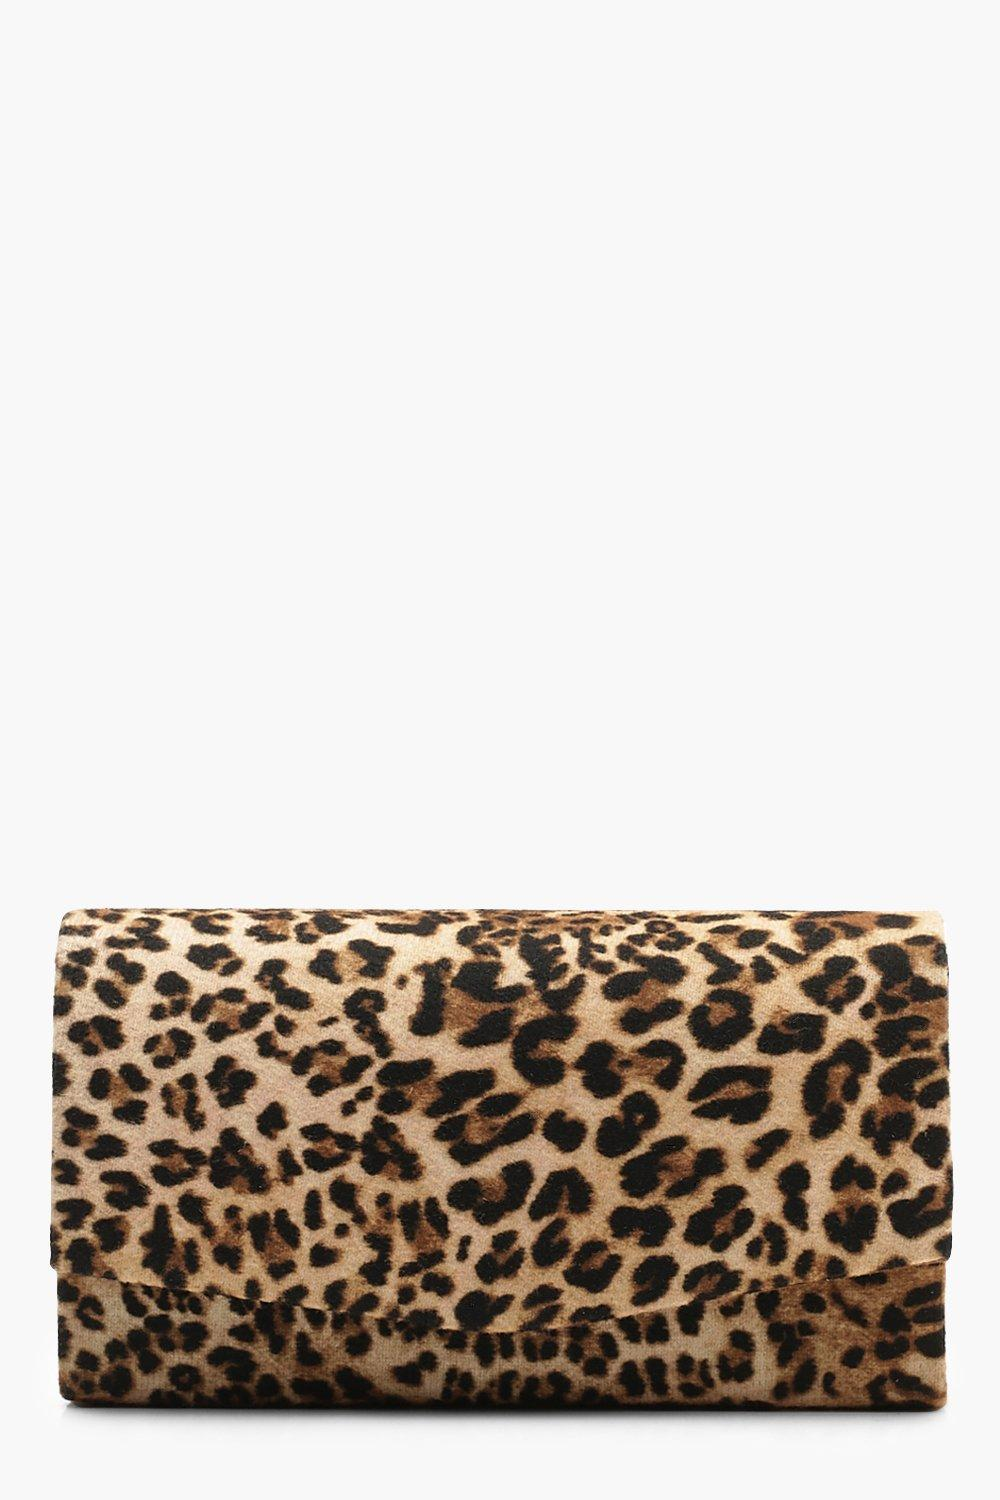 boohoo Womens Structured Leopard Envelope Clutch Bag & Chain - Beige - One Size, Beige